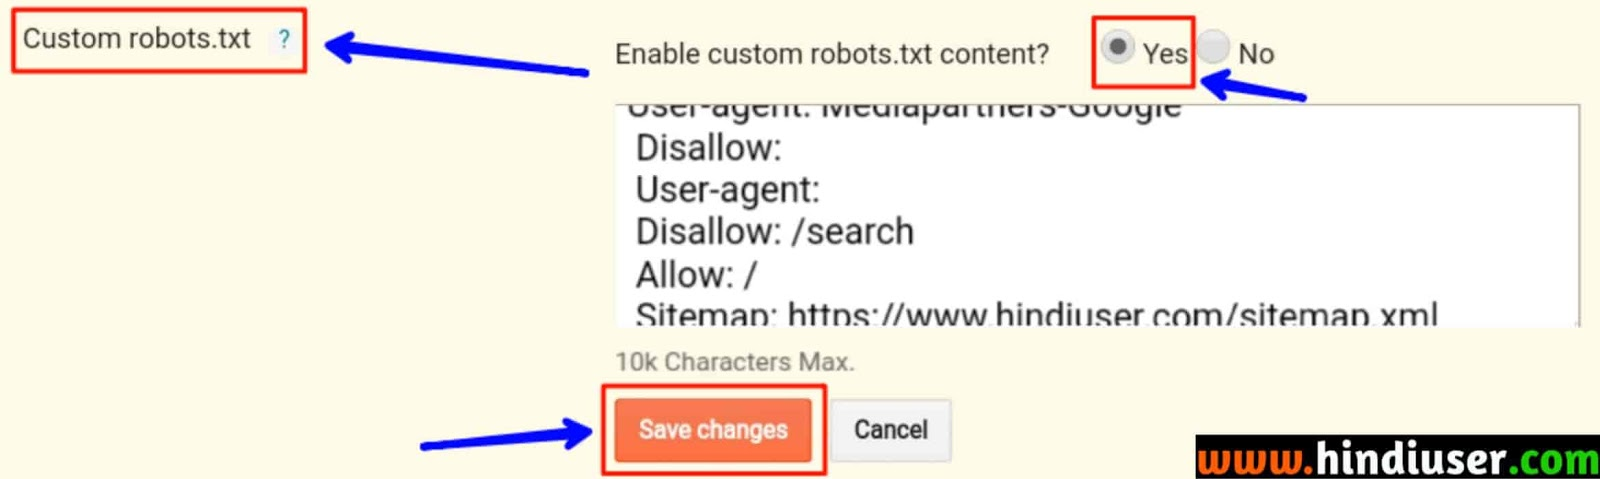 robot txt in hindi